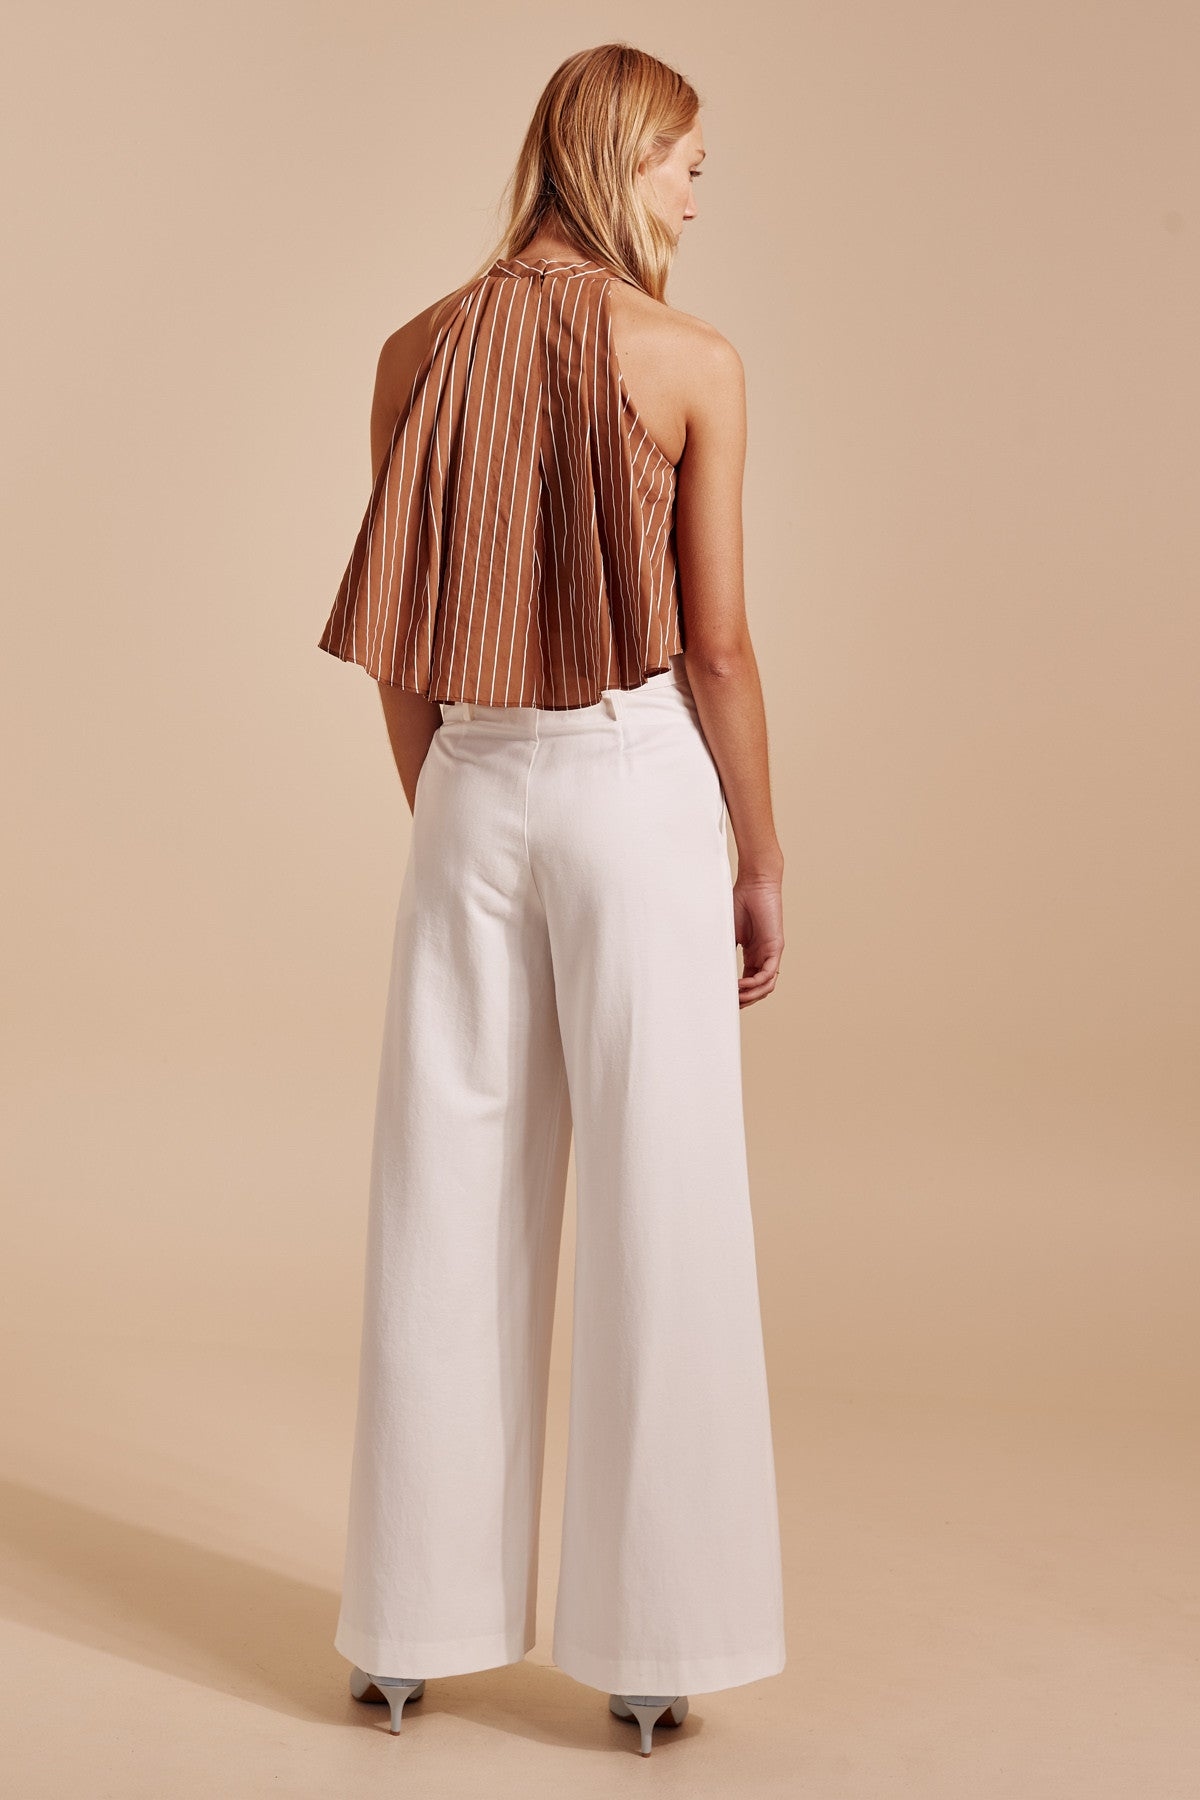 SUFFUSE TOP tan stripe